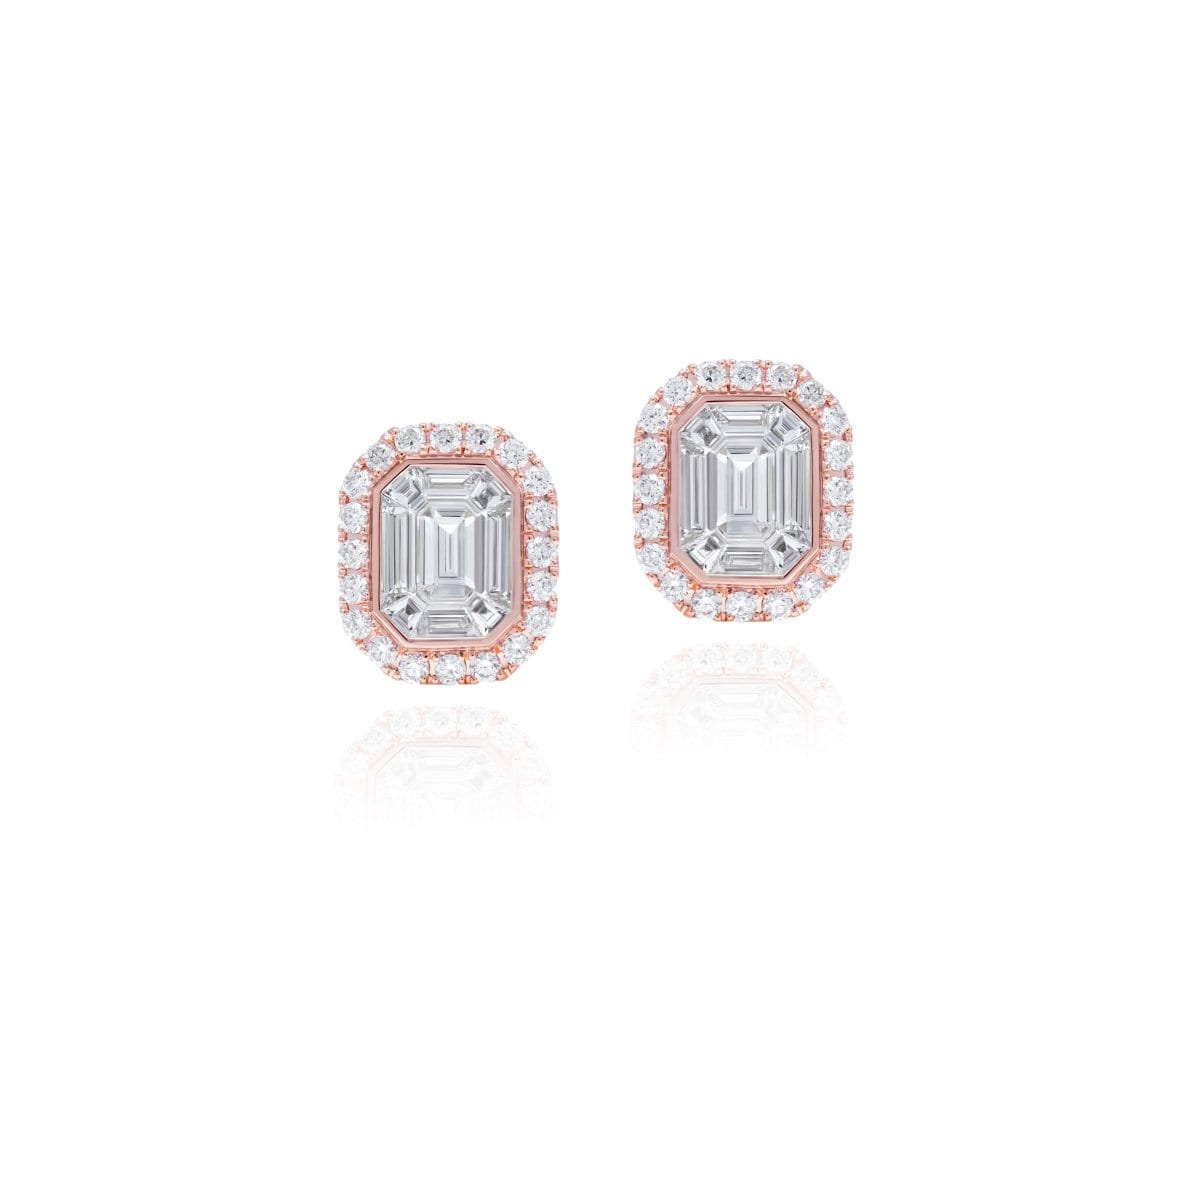 MUSE PINK Earrings - STENZHORN JEWELLERY